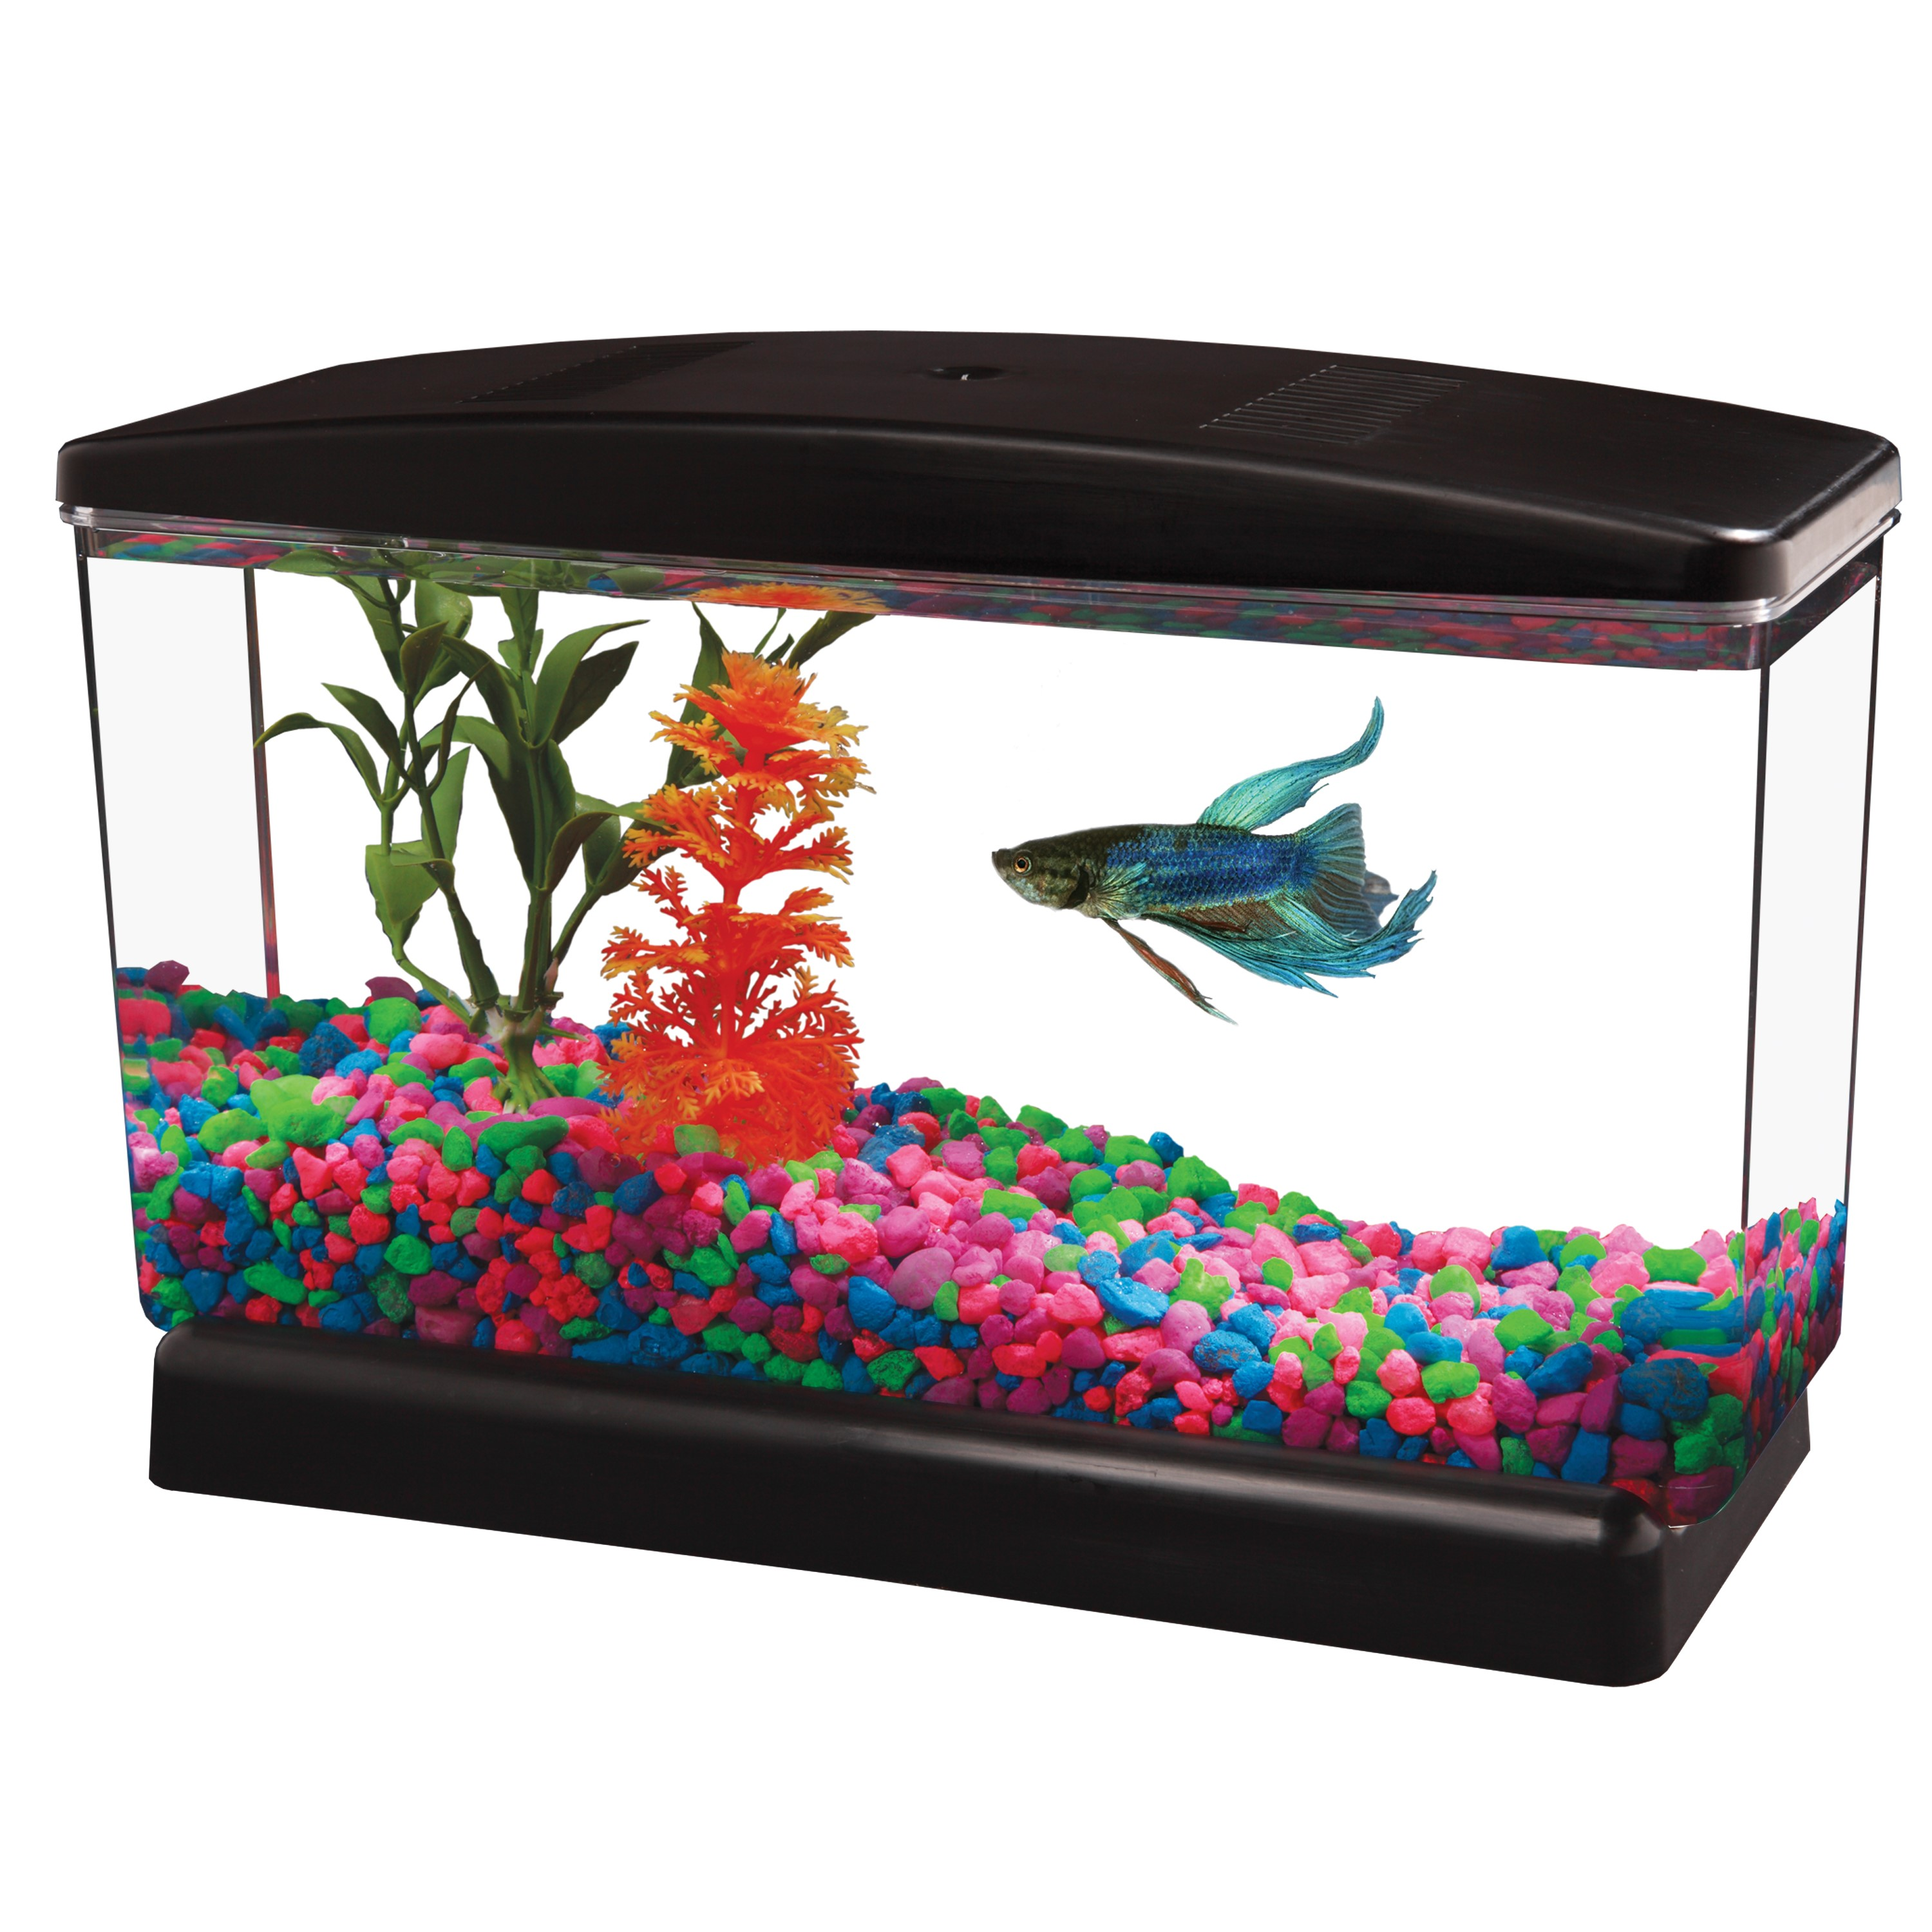 "Aqua Culture BettaView Aquarium 5 Gallon 9 75""L x 3 80""W x 6 25"